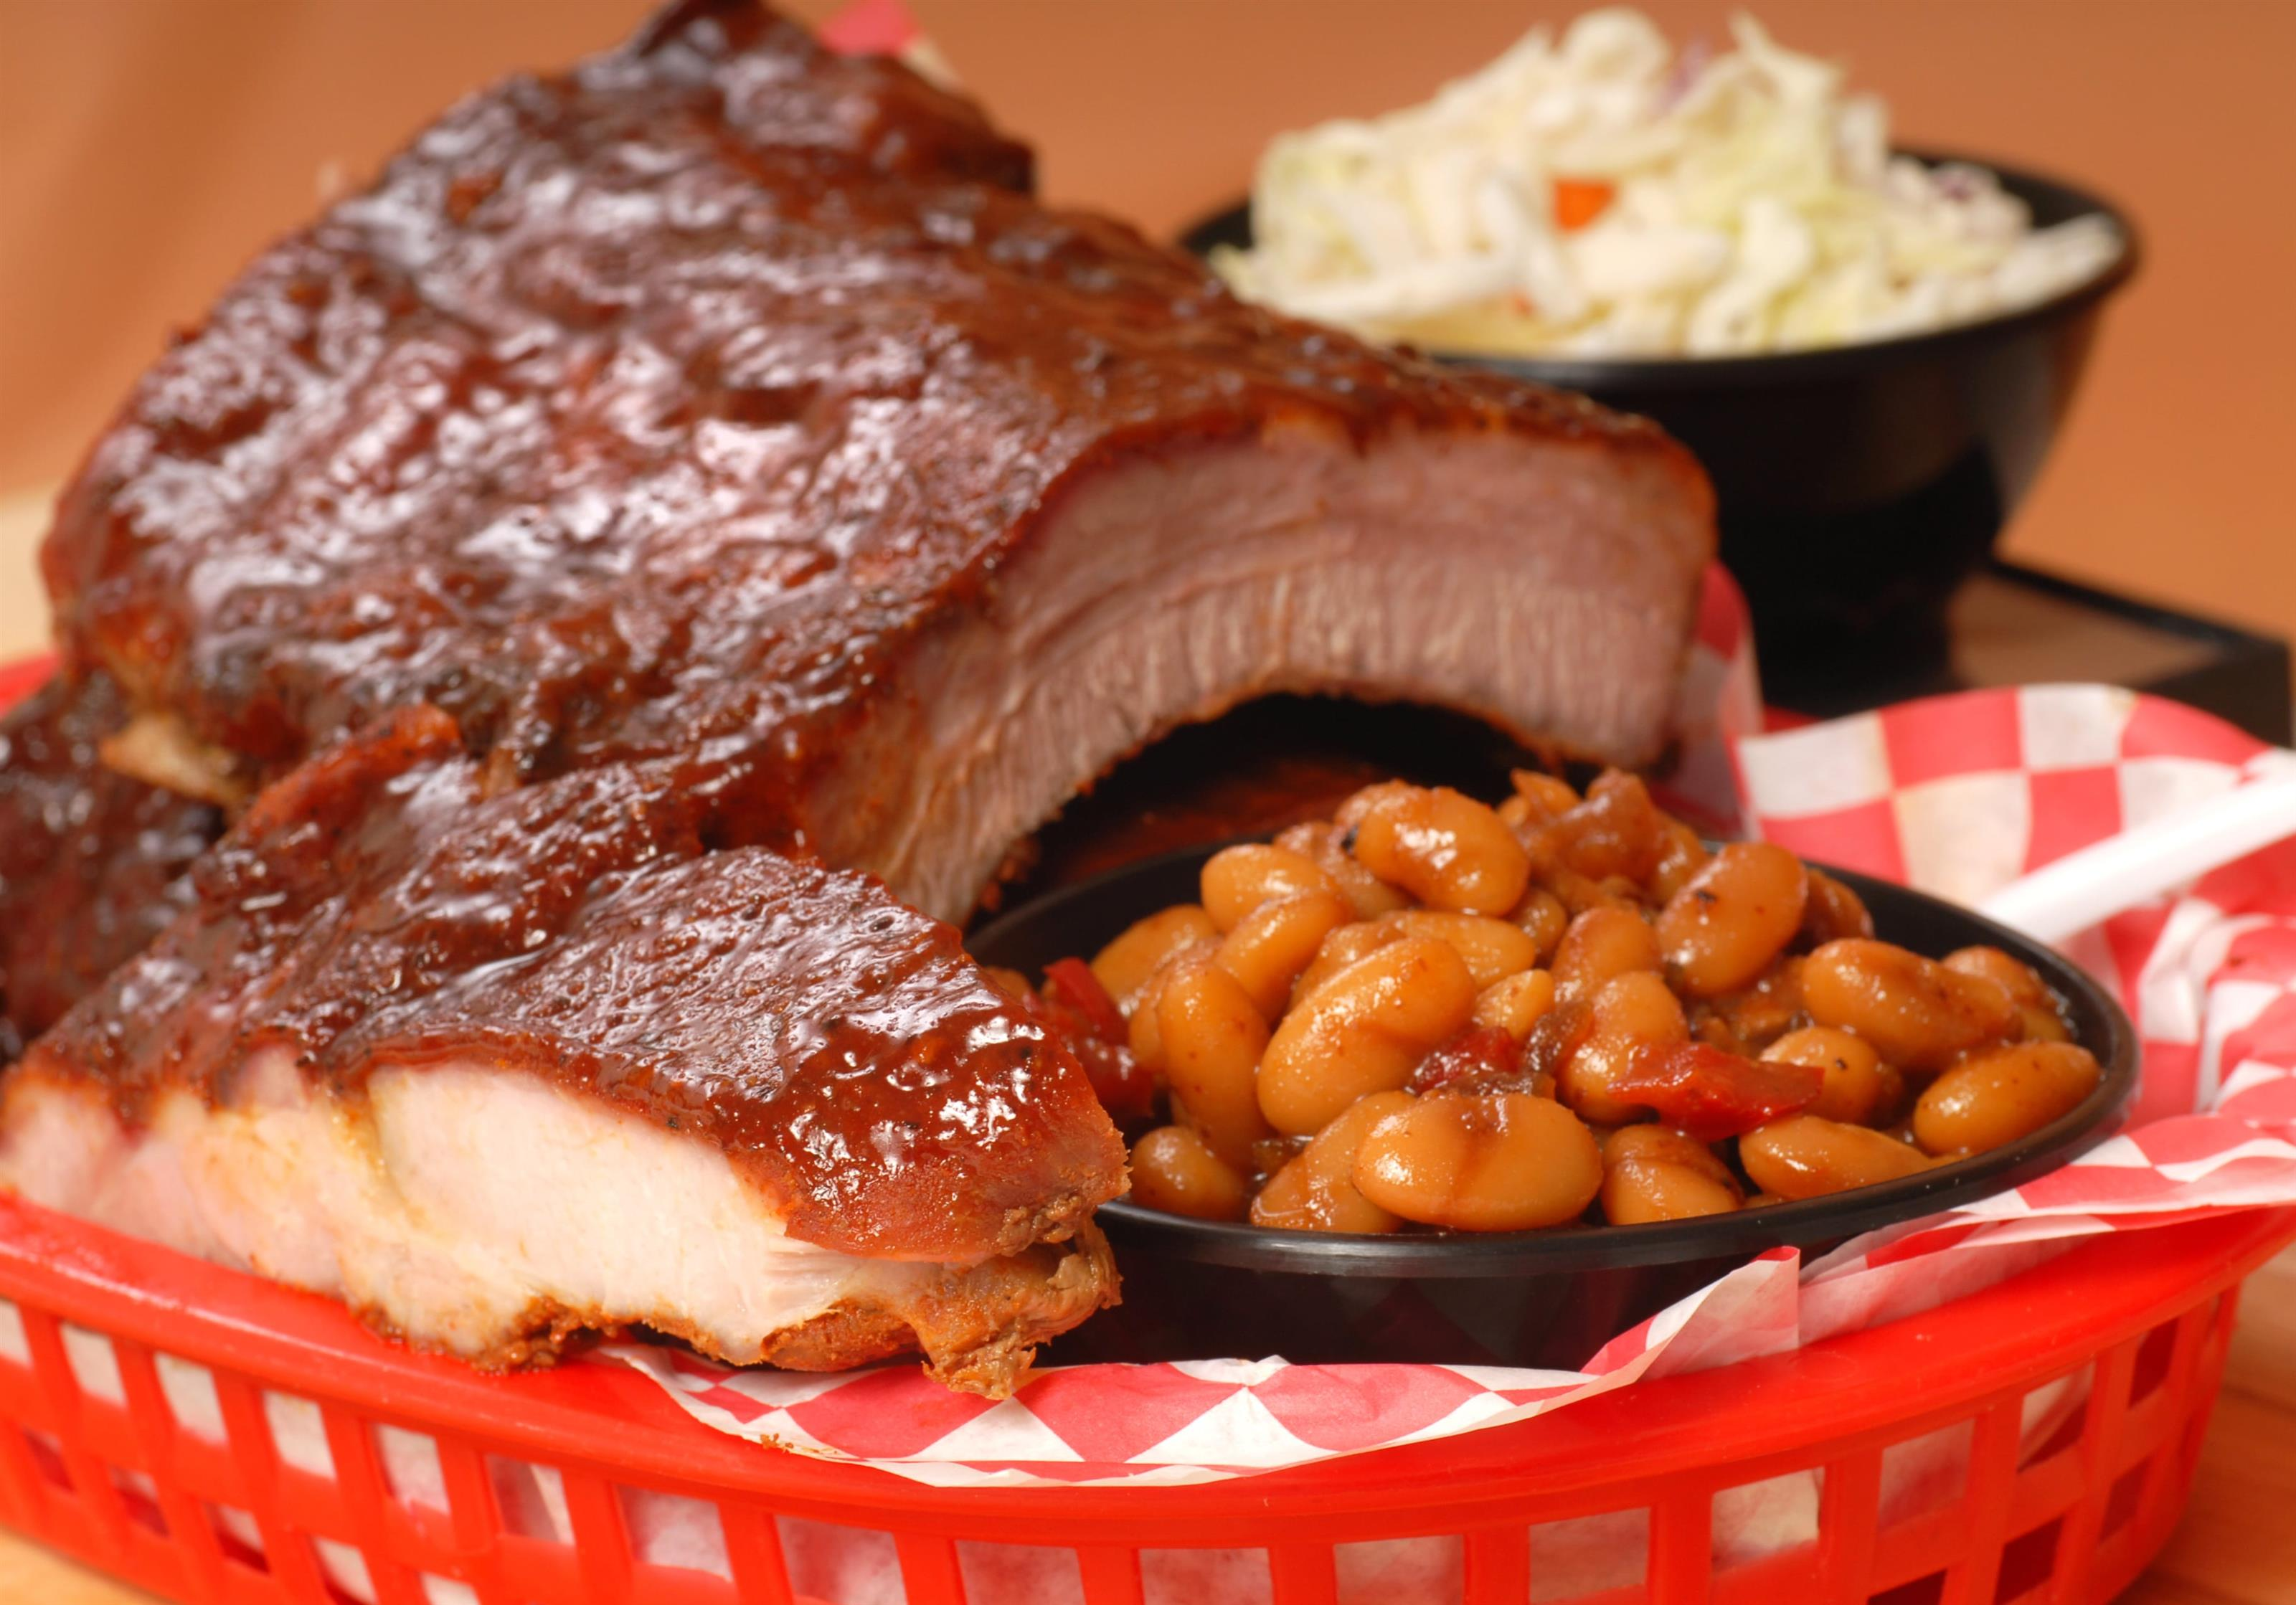 bbq ribs with a side of baked beans and coleslaw